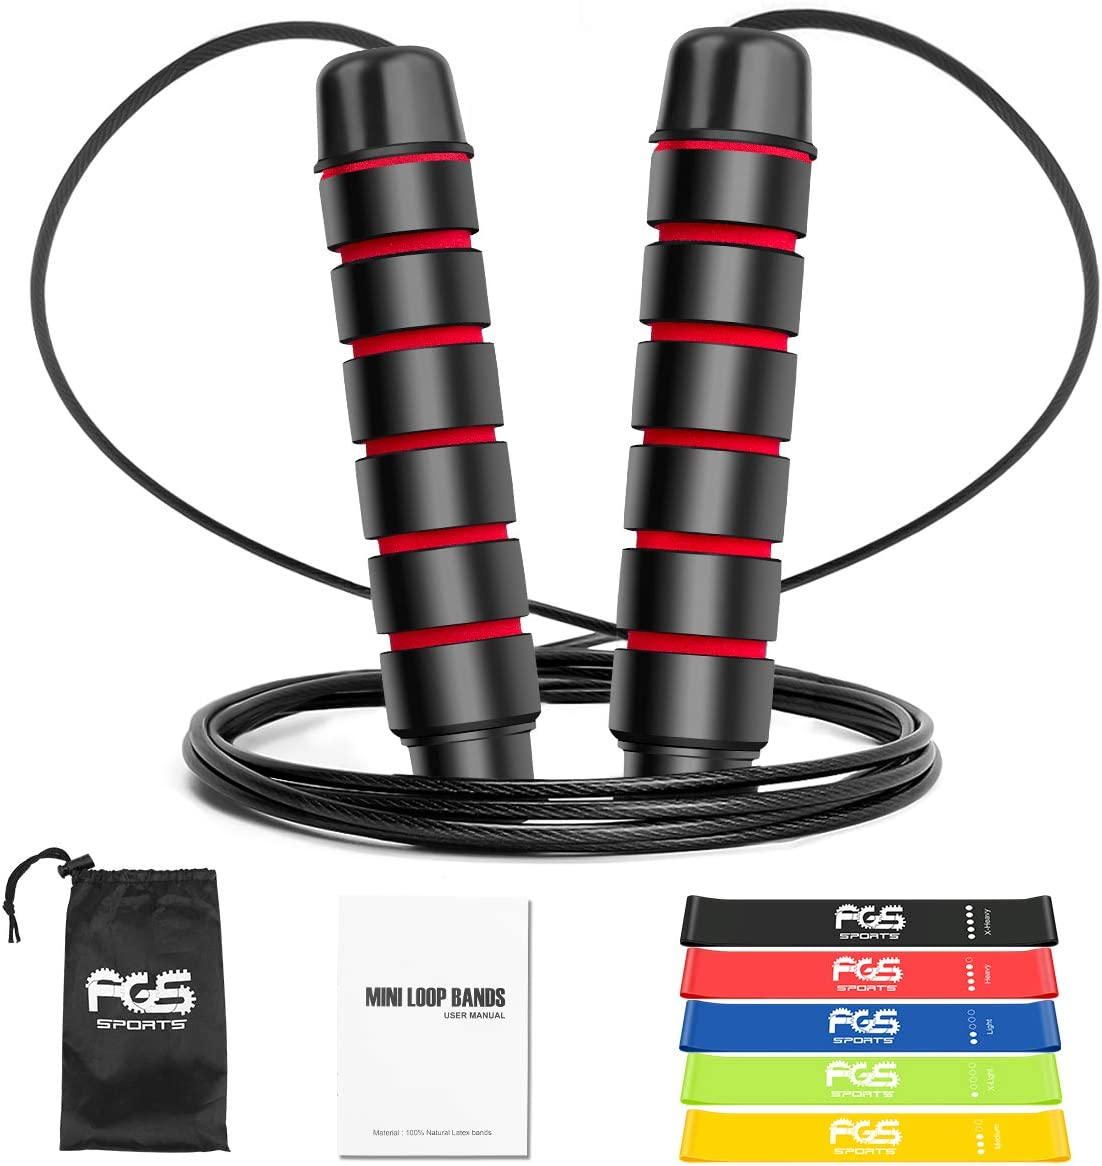 FG5 Jump Rope Fitness Skipping Rope /& Natural Latex Resistance Exercise Bands for Health,Home Fitness Strength Training Stretching Physical Therapy